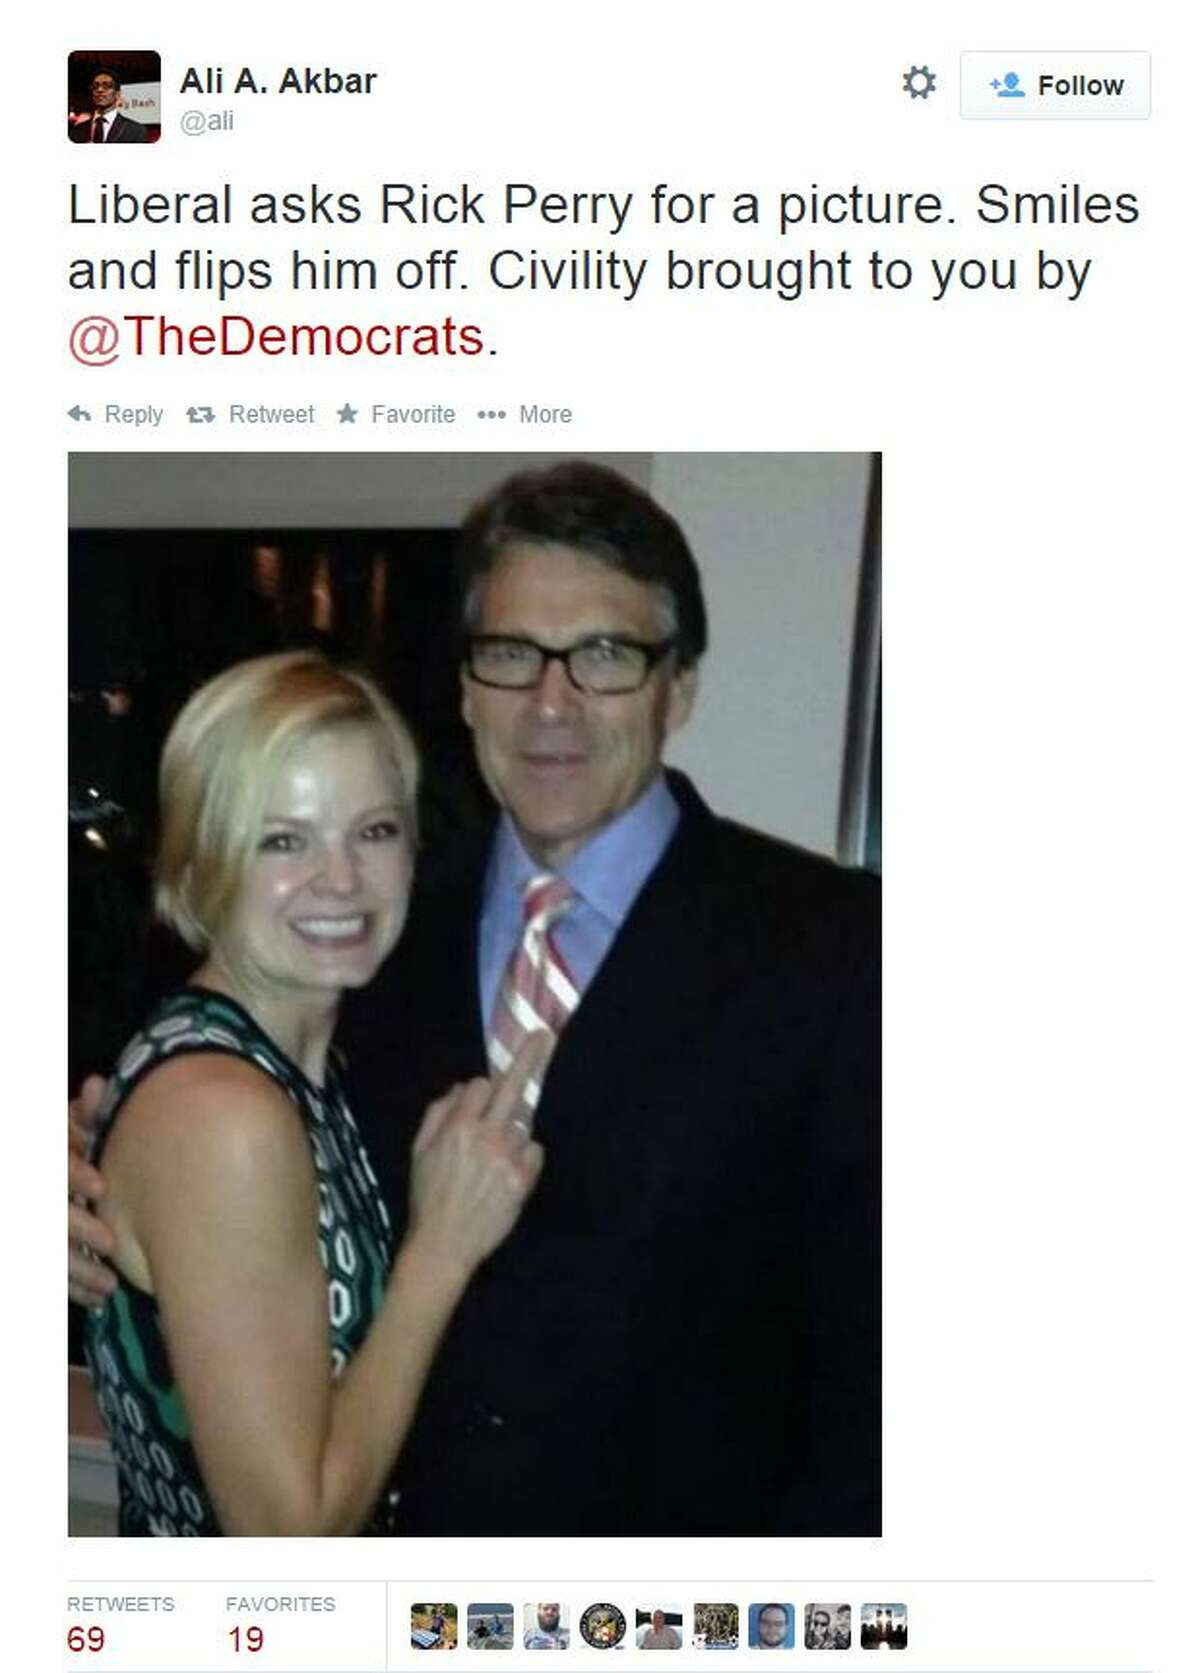 A photo of Gov. Rick Perry posing with a woman making a lewd gesture could have been prodded by alcohol. The woman in the photo - identified only as